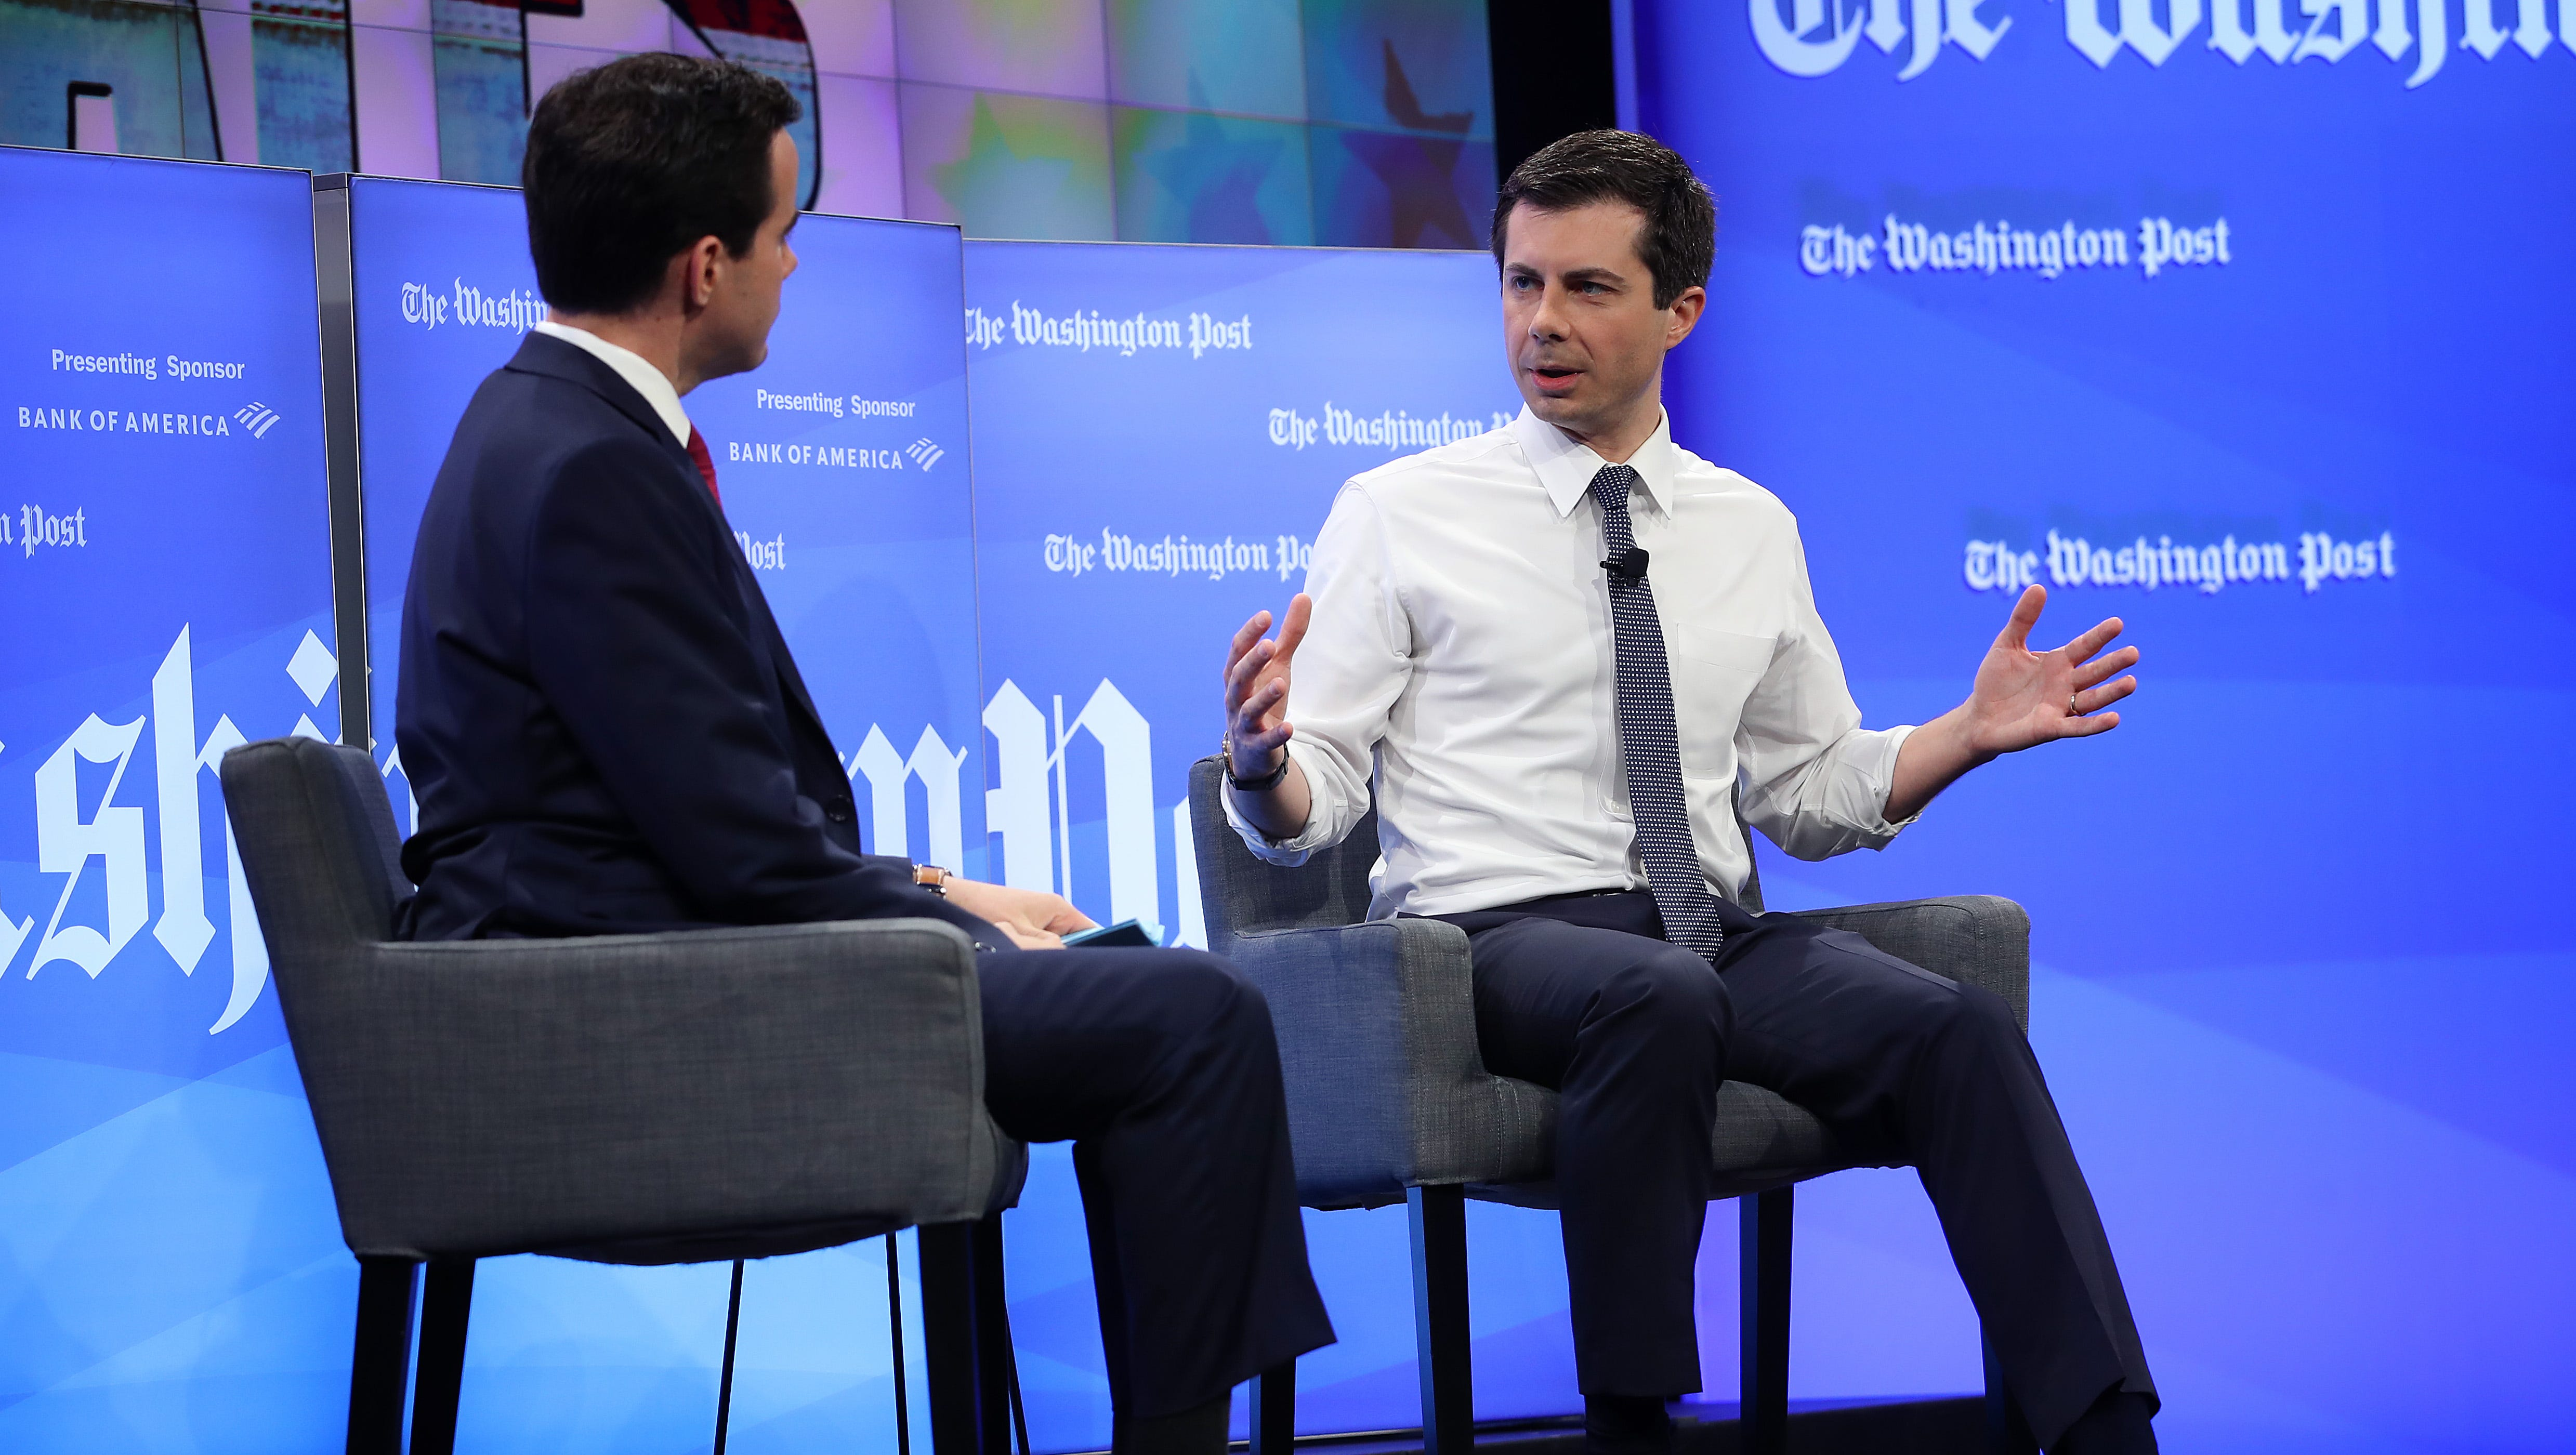 WASHINGTON, DC - MAY 23:  Democratic presidential candidate Mayor Pete Buttigieg (R) answers questions from reporter Robert Costa (L) at a Washington Post Live discussion May 23, 2019 in Washington, DC.  (Photo by Win McNamee/Getty Images)